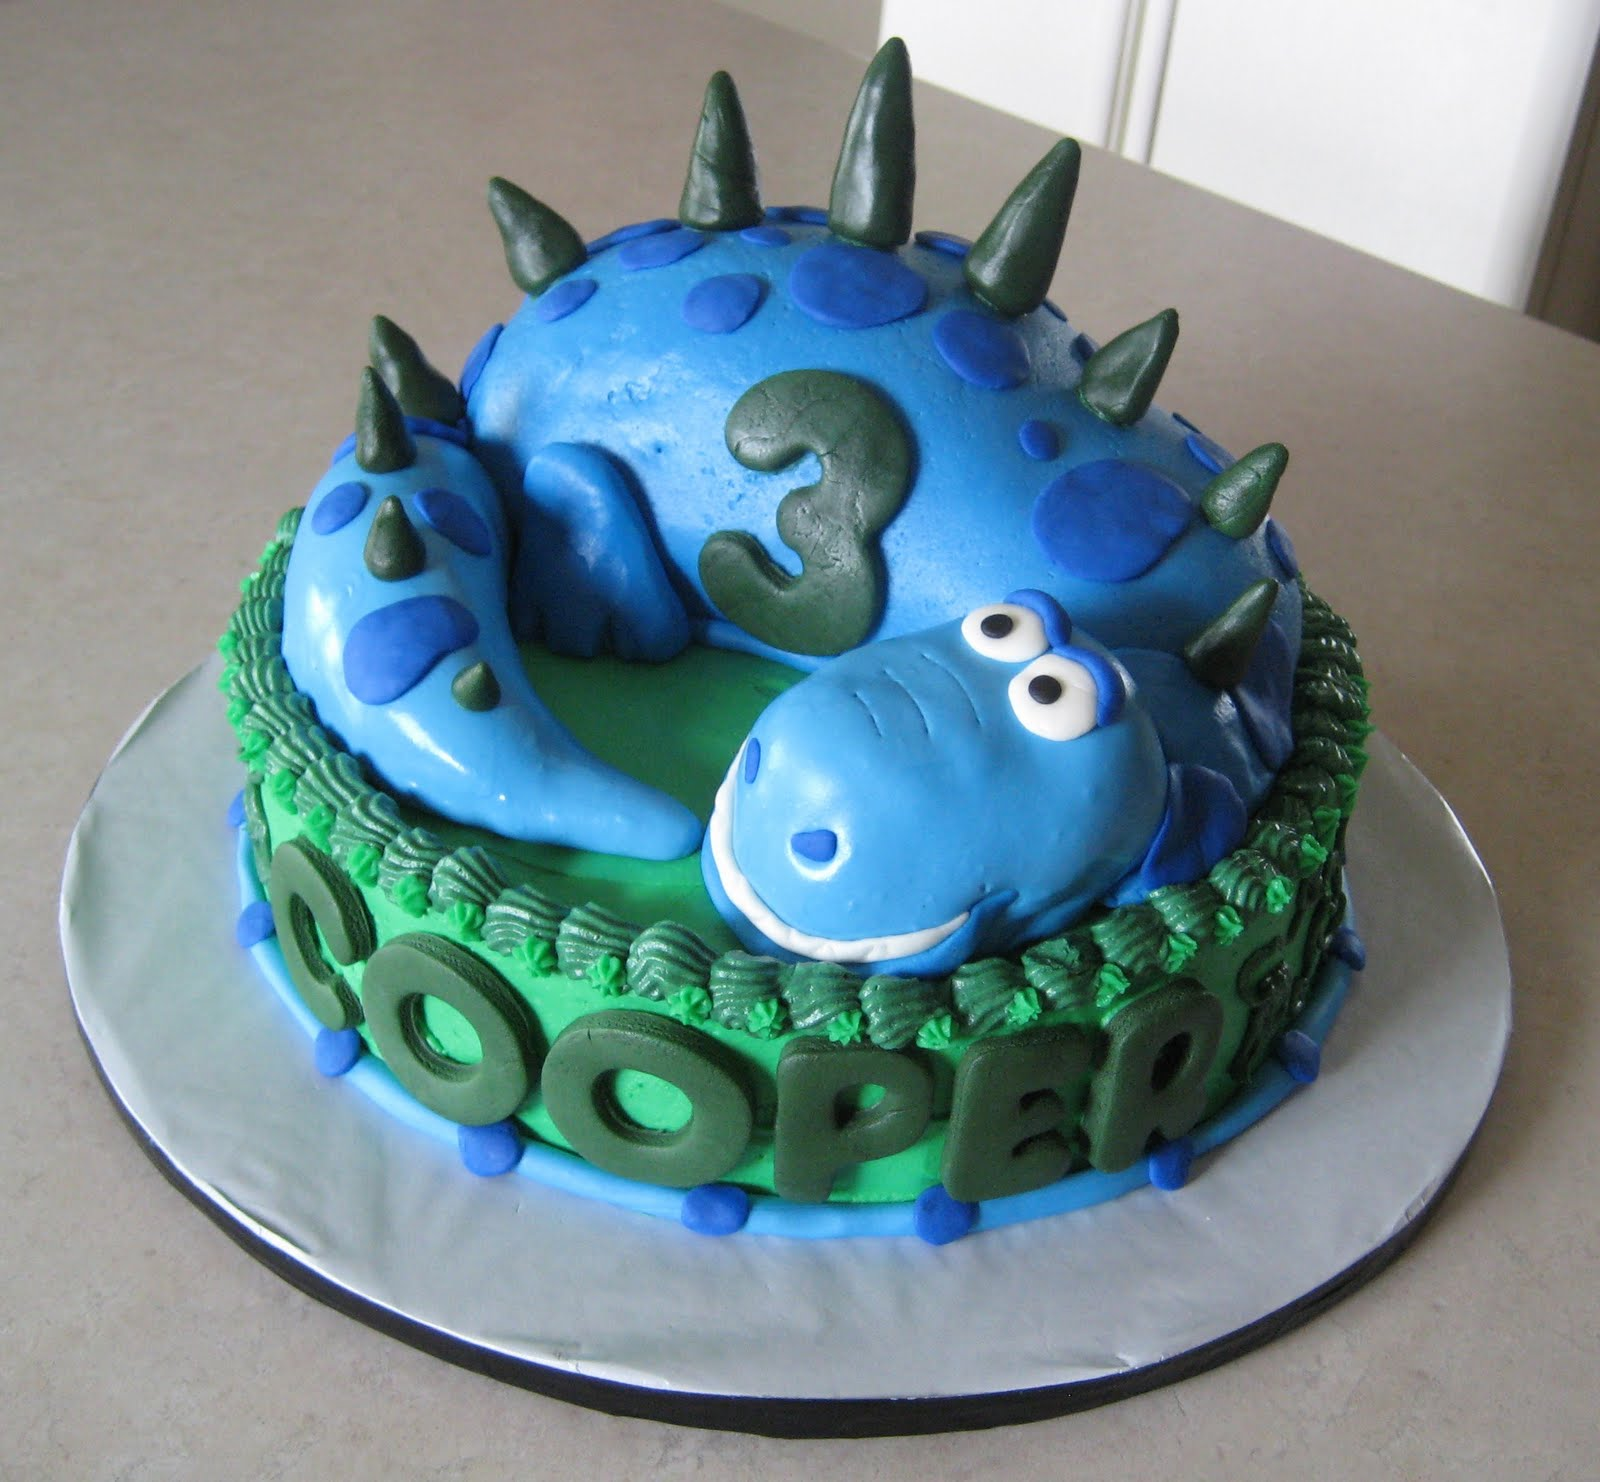 Custom Cakes By Julie: Dinosaur Cake